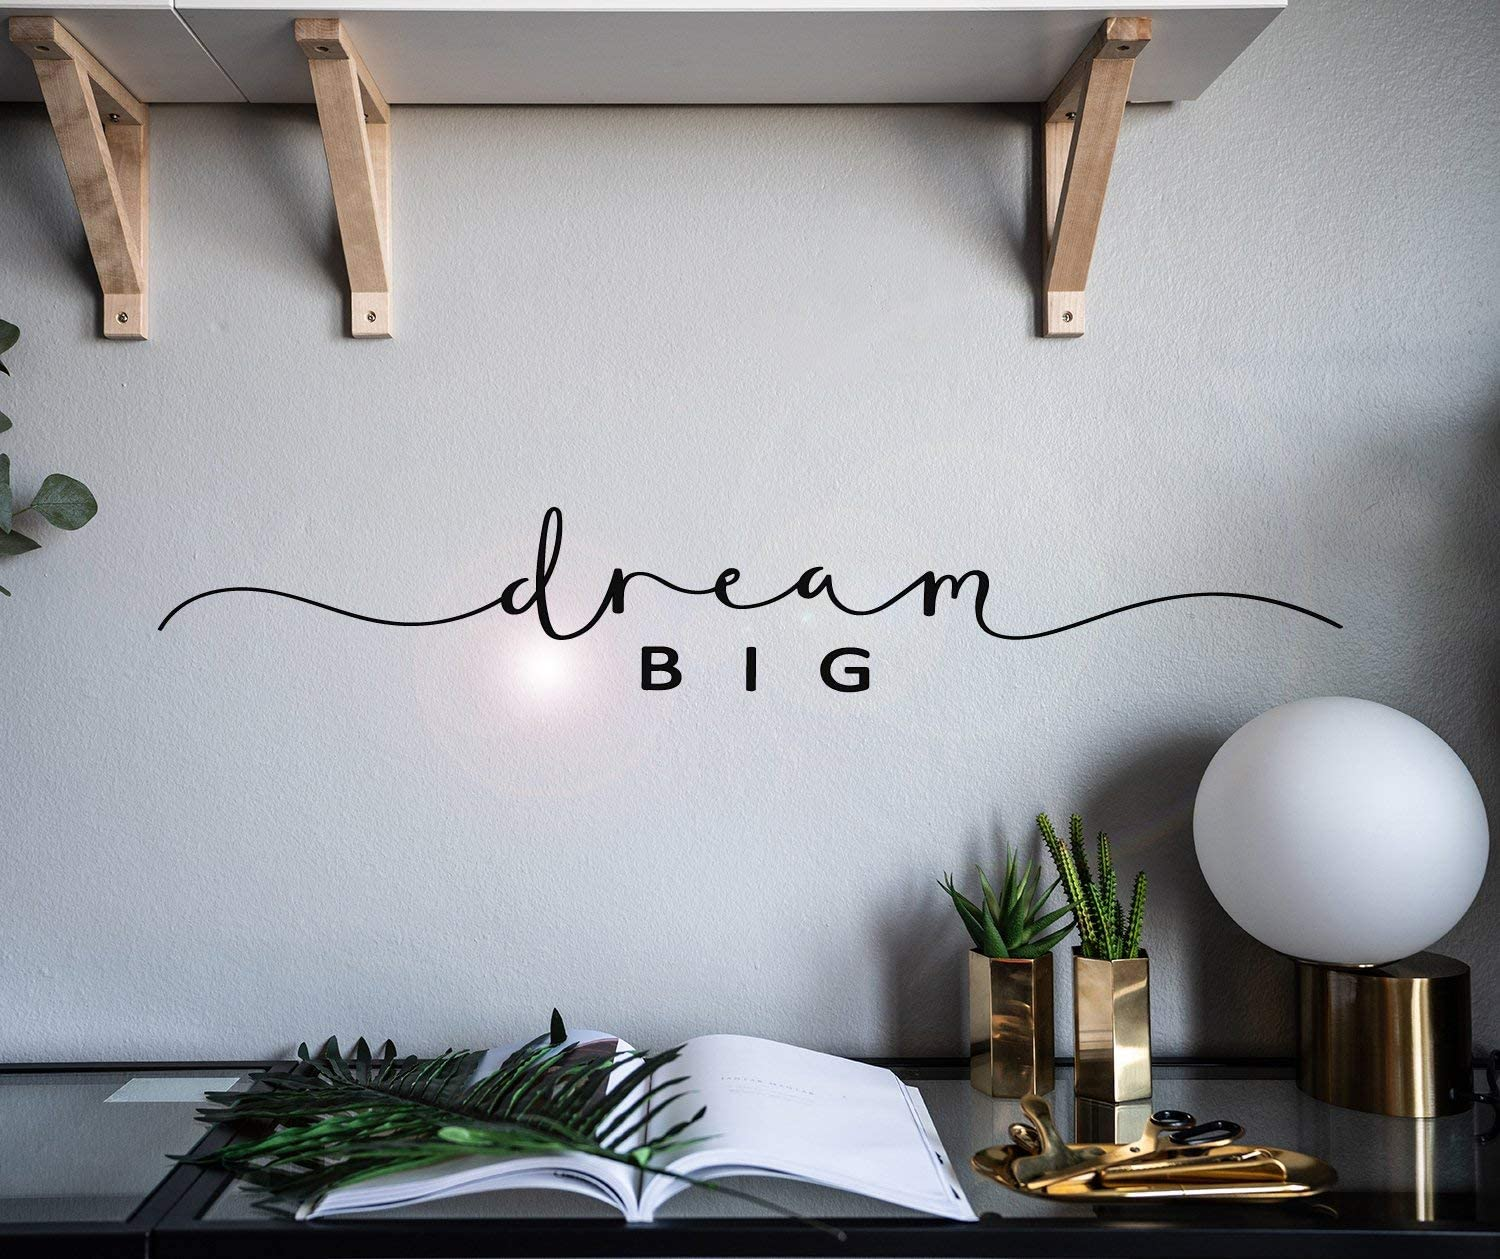 Vinyl Wall Decal Dream Big Lettering Words Room Home Idea Stickers Mural 28.5 in x 4.5 in gz045